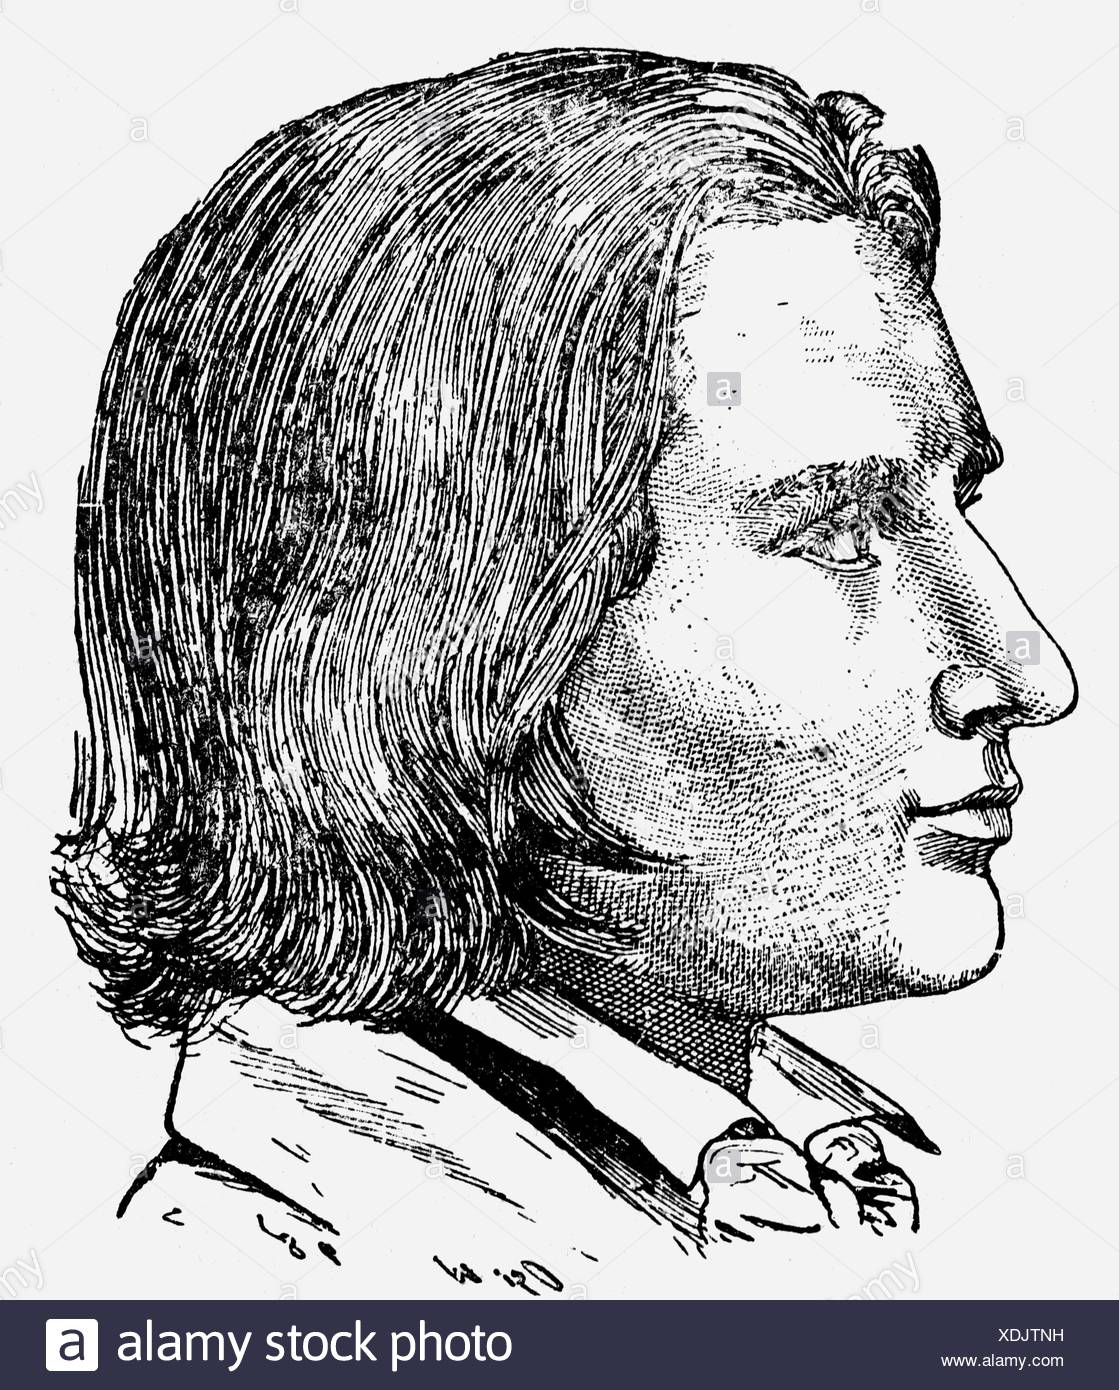 Liszt, Franz, 22.10.1811 - 31.7.1886, Hungarian composer and pianist, portrait, with 25 years, 1837, wood engraving, 19th century,  , Stock Photo